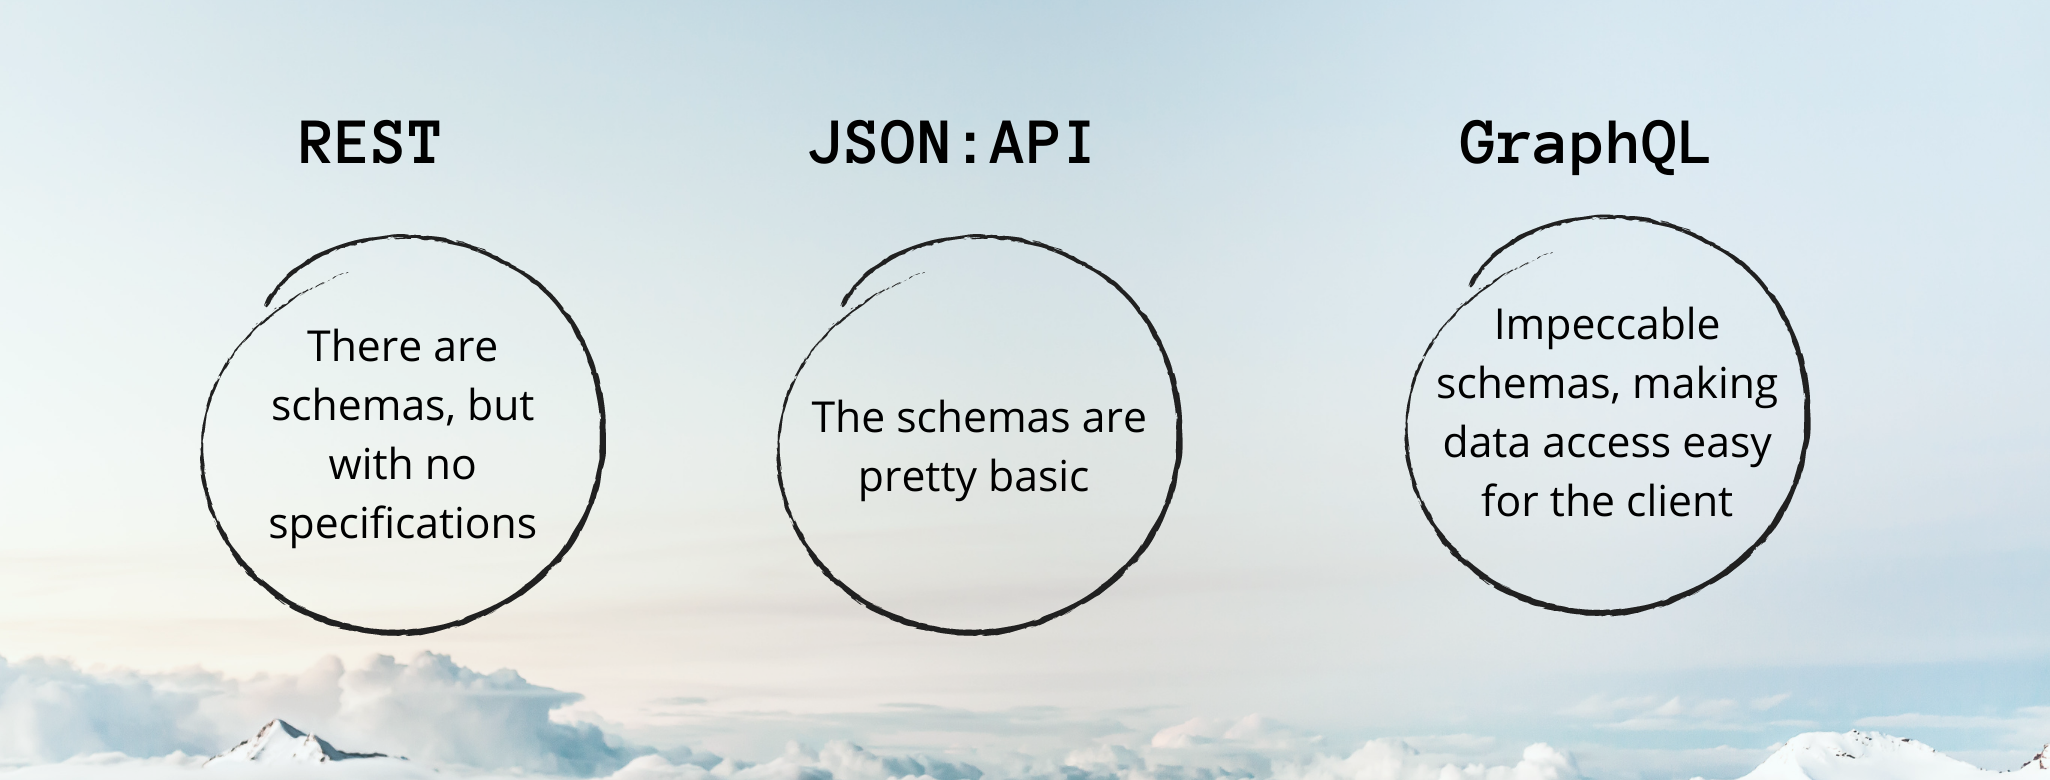 A distinction is shown between the three APIs in terms of schema using three circles.